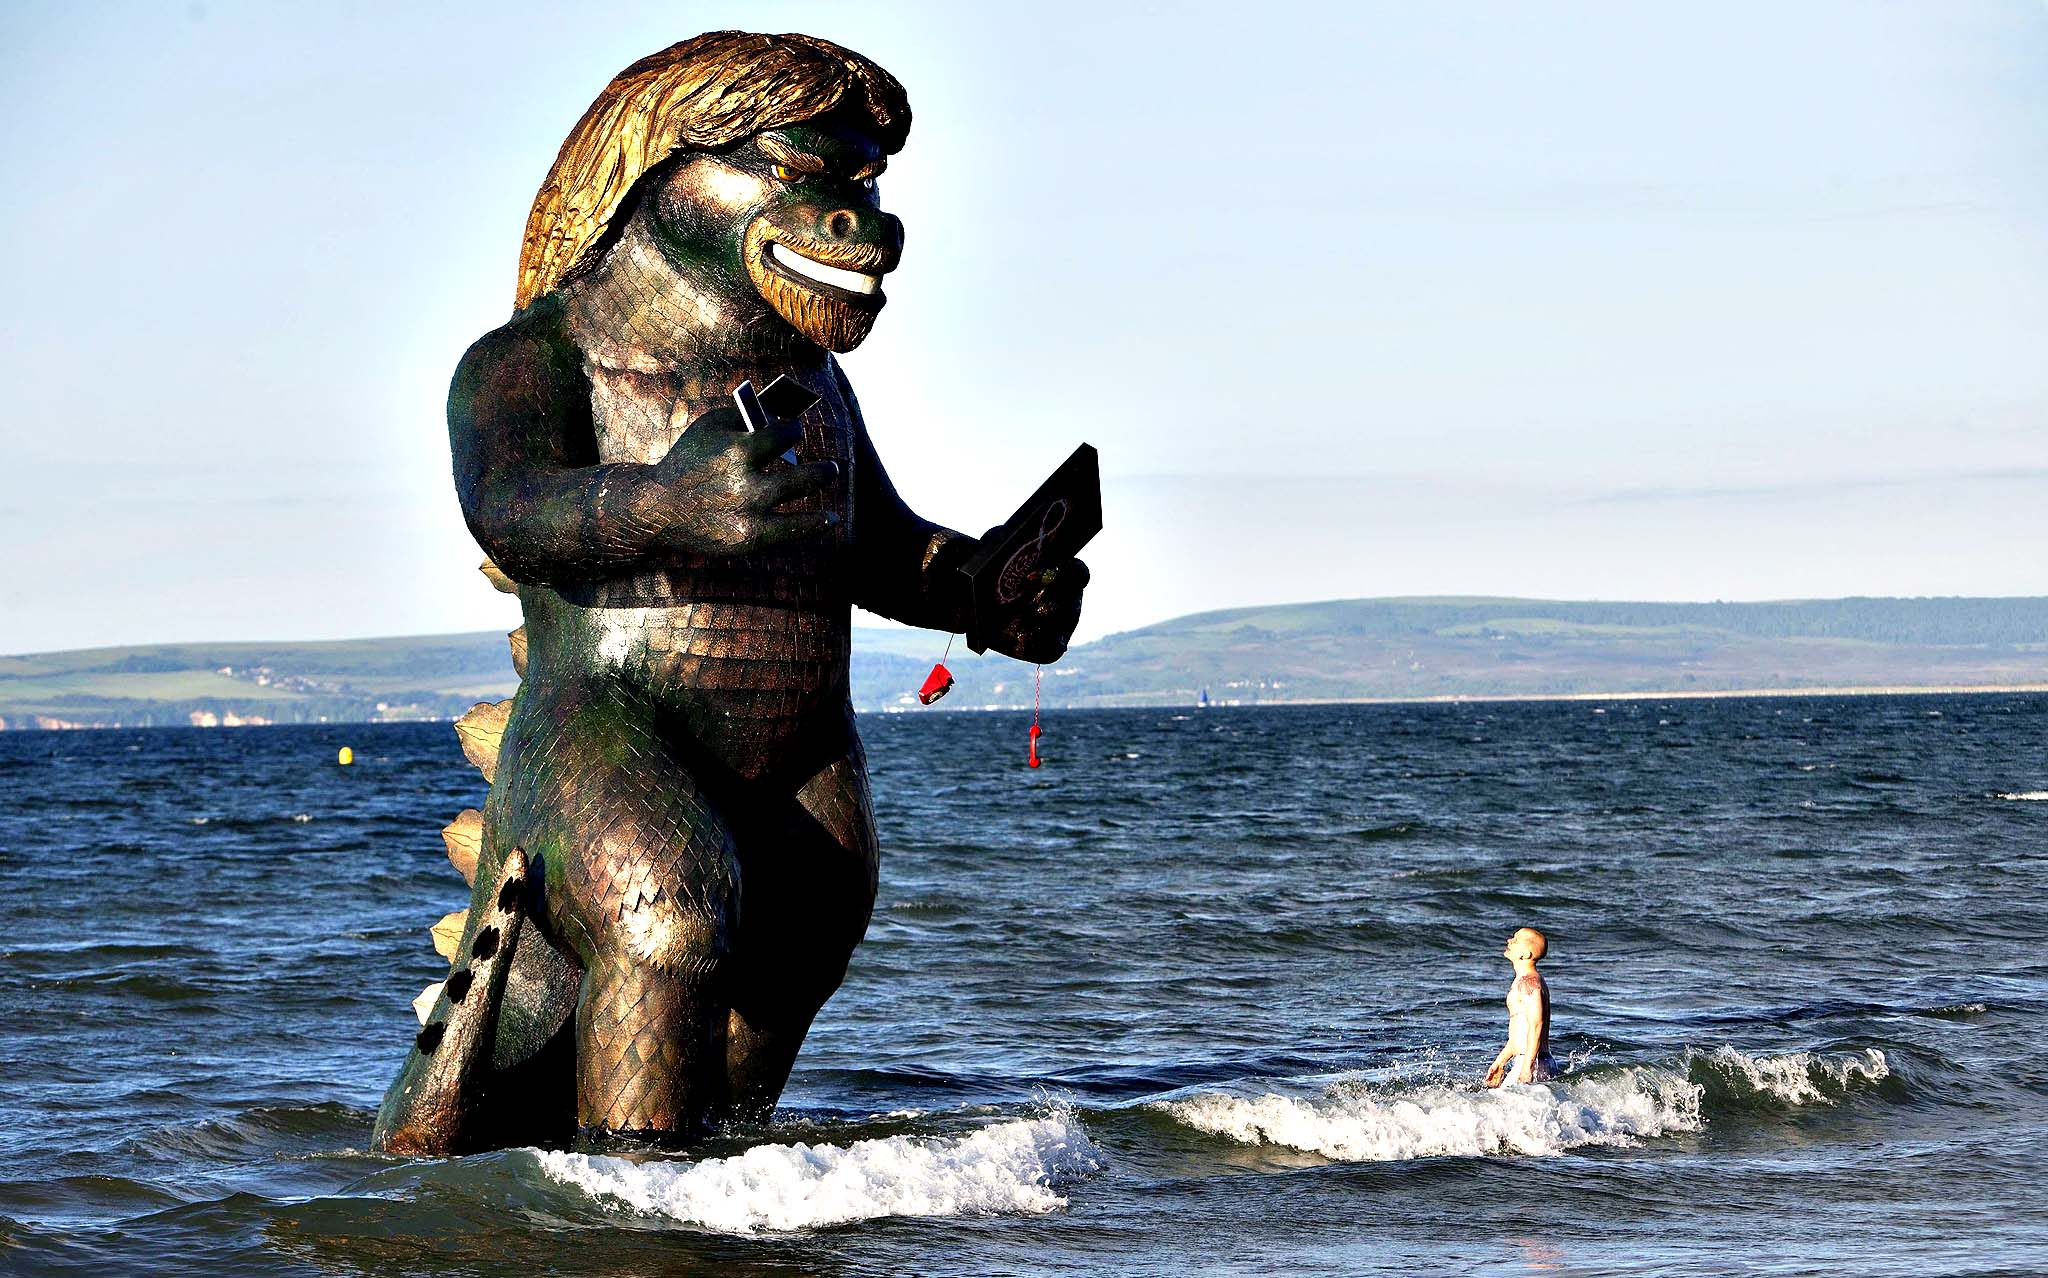 A 25 foot high sea creature resembling Richard Branson emerges from the sea on Bournemouth beach in Dorset carrying a TV, laptop, phone and mobile to celebrate the launch of Virgin Media's Big Kahuna quad-play bundle.